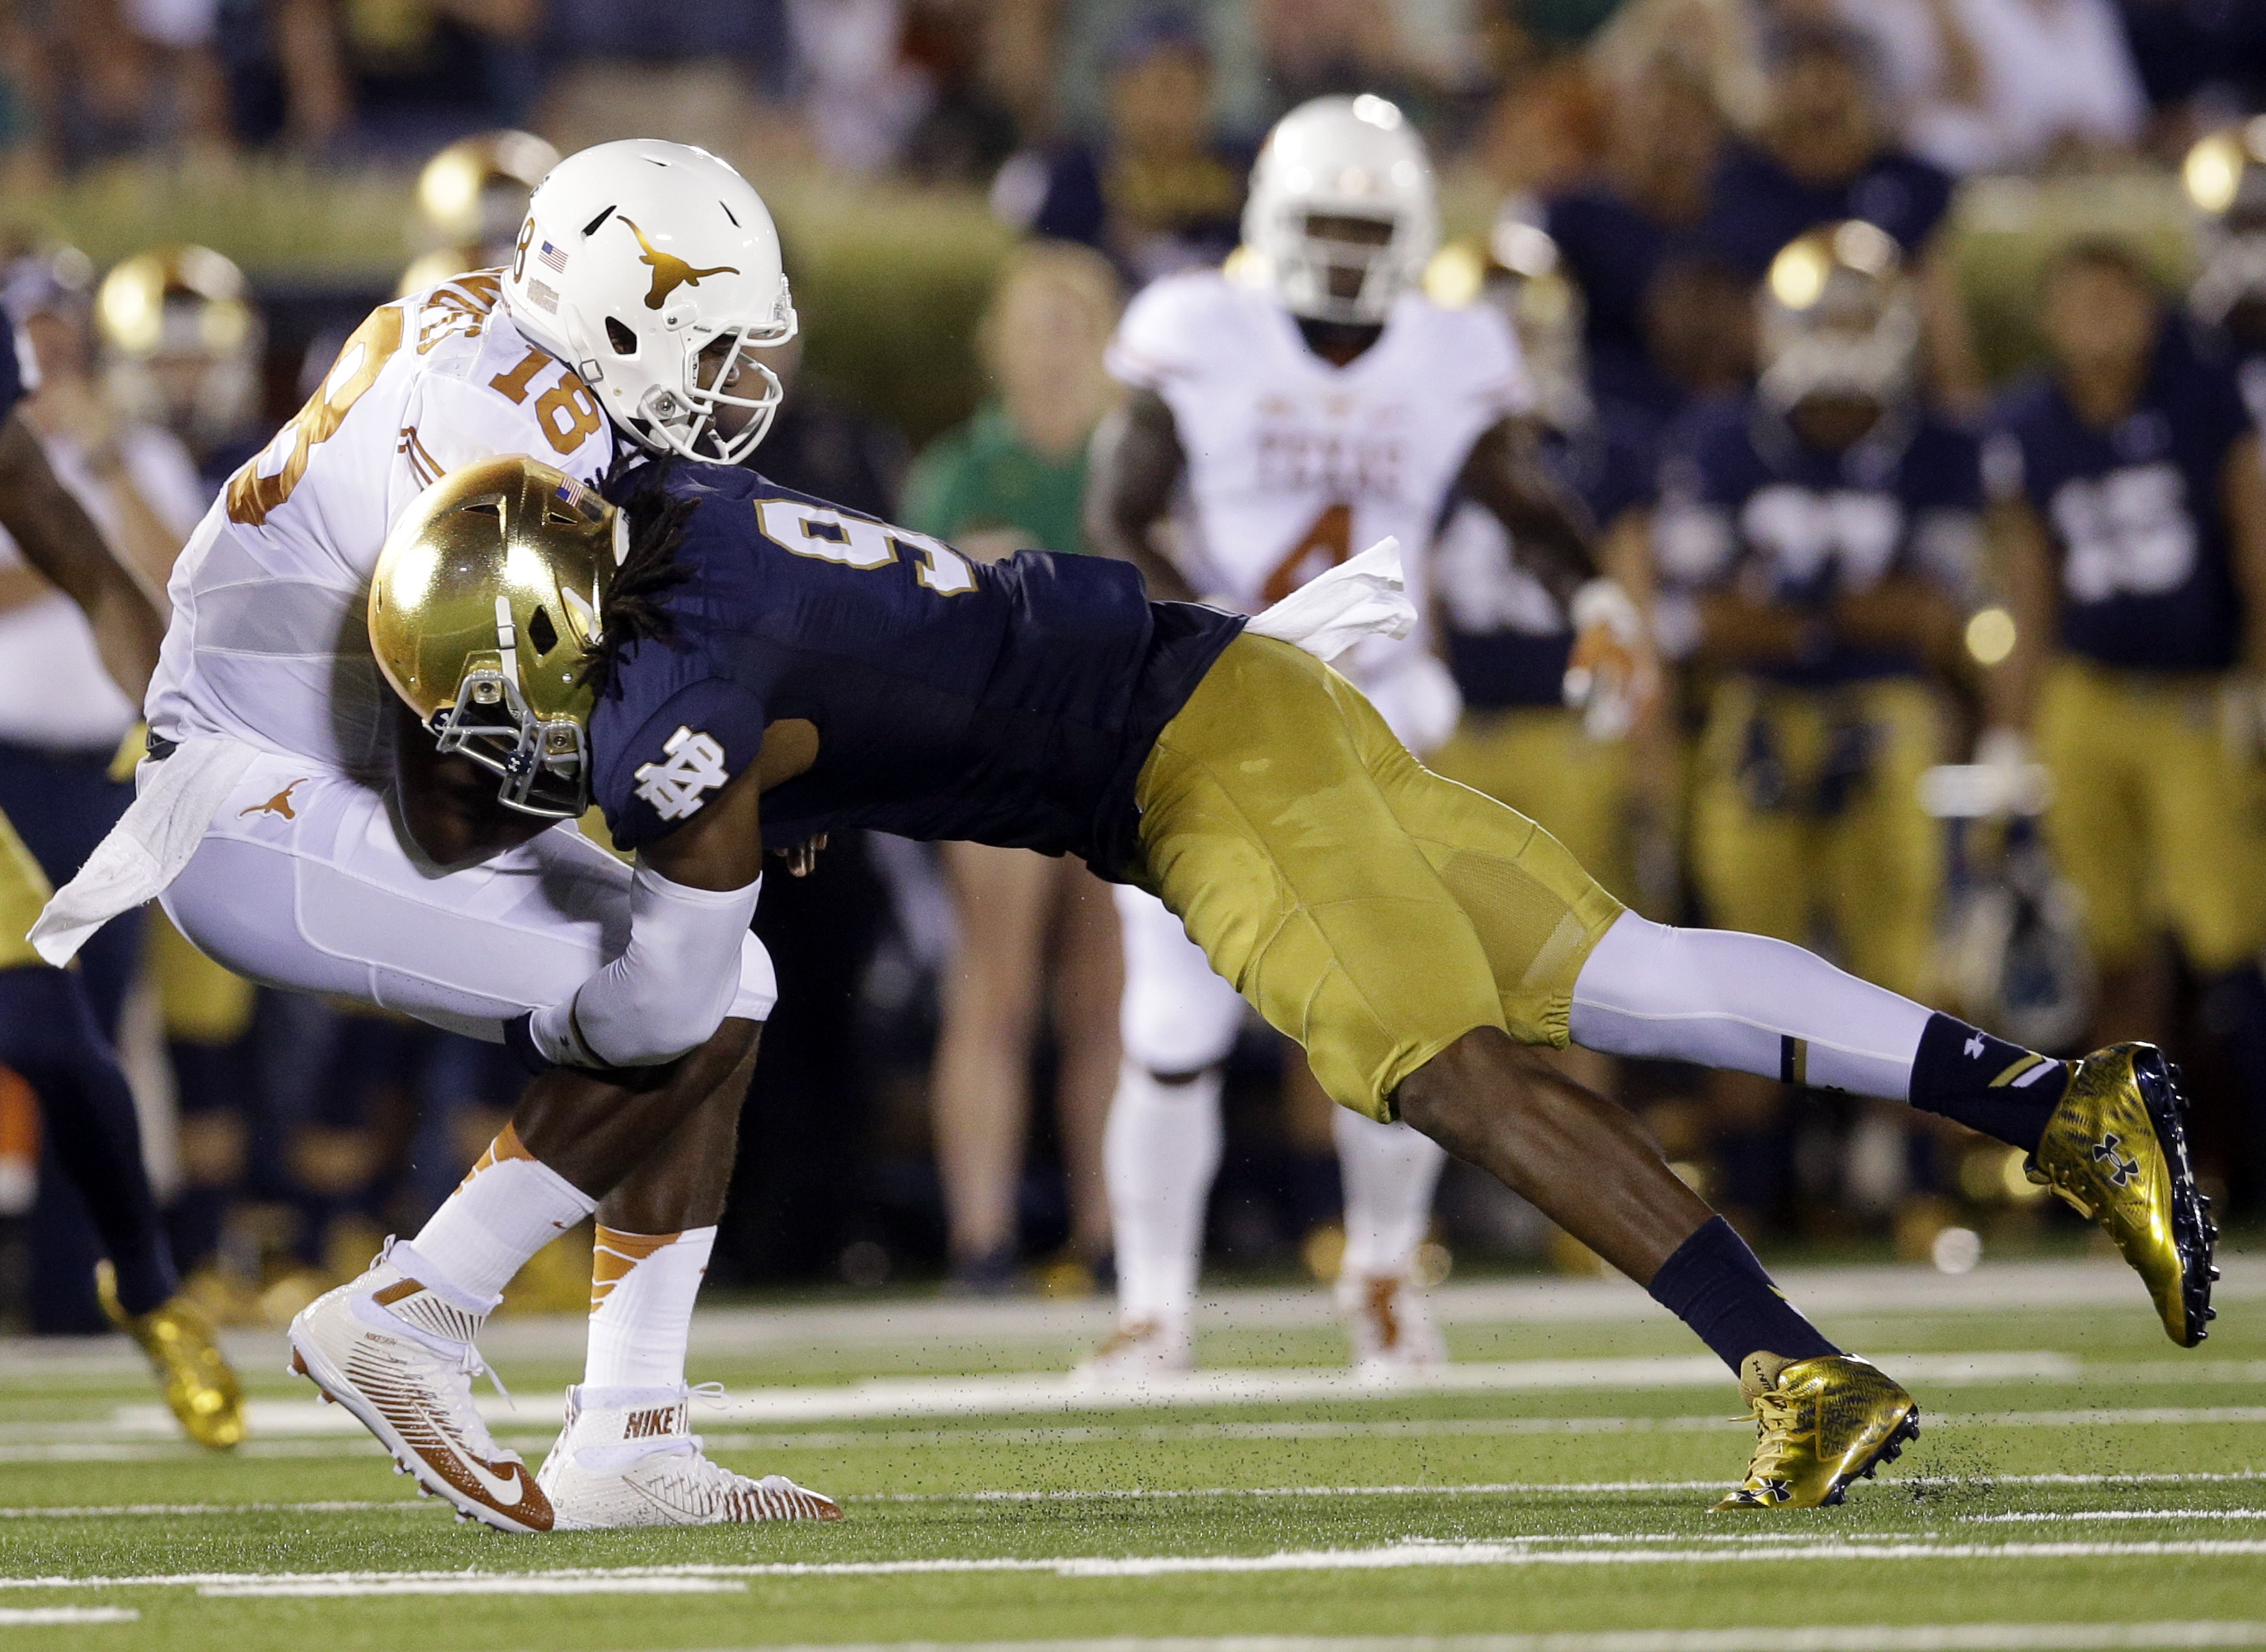 Notre Dame linebacker Jaylon Smith, right, tackles Texas quarterback Tyrone Swoopes during the first half of an NCAA college football game Saturday, Sept. 5, 2015, in South Bend, Ind. (AP Photo/Nam Y. Huh)